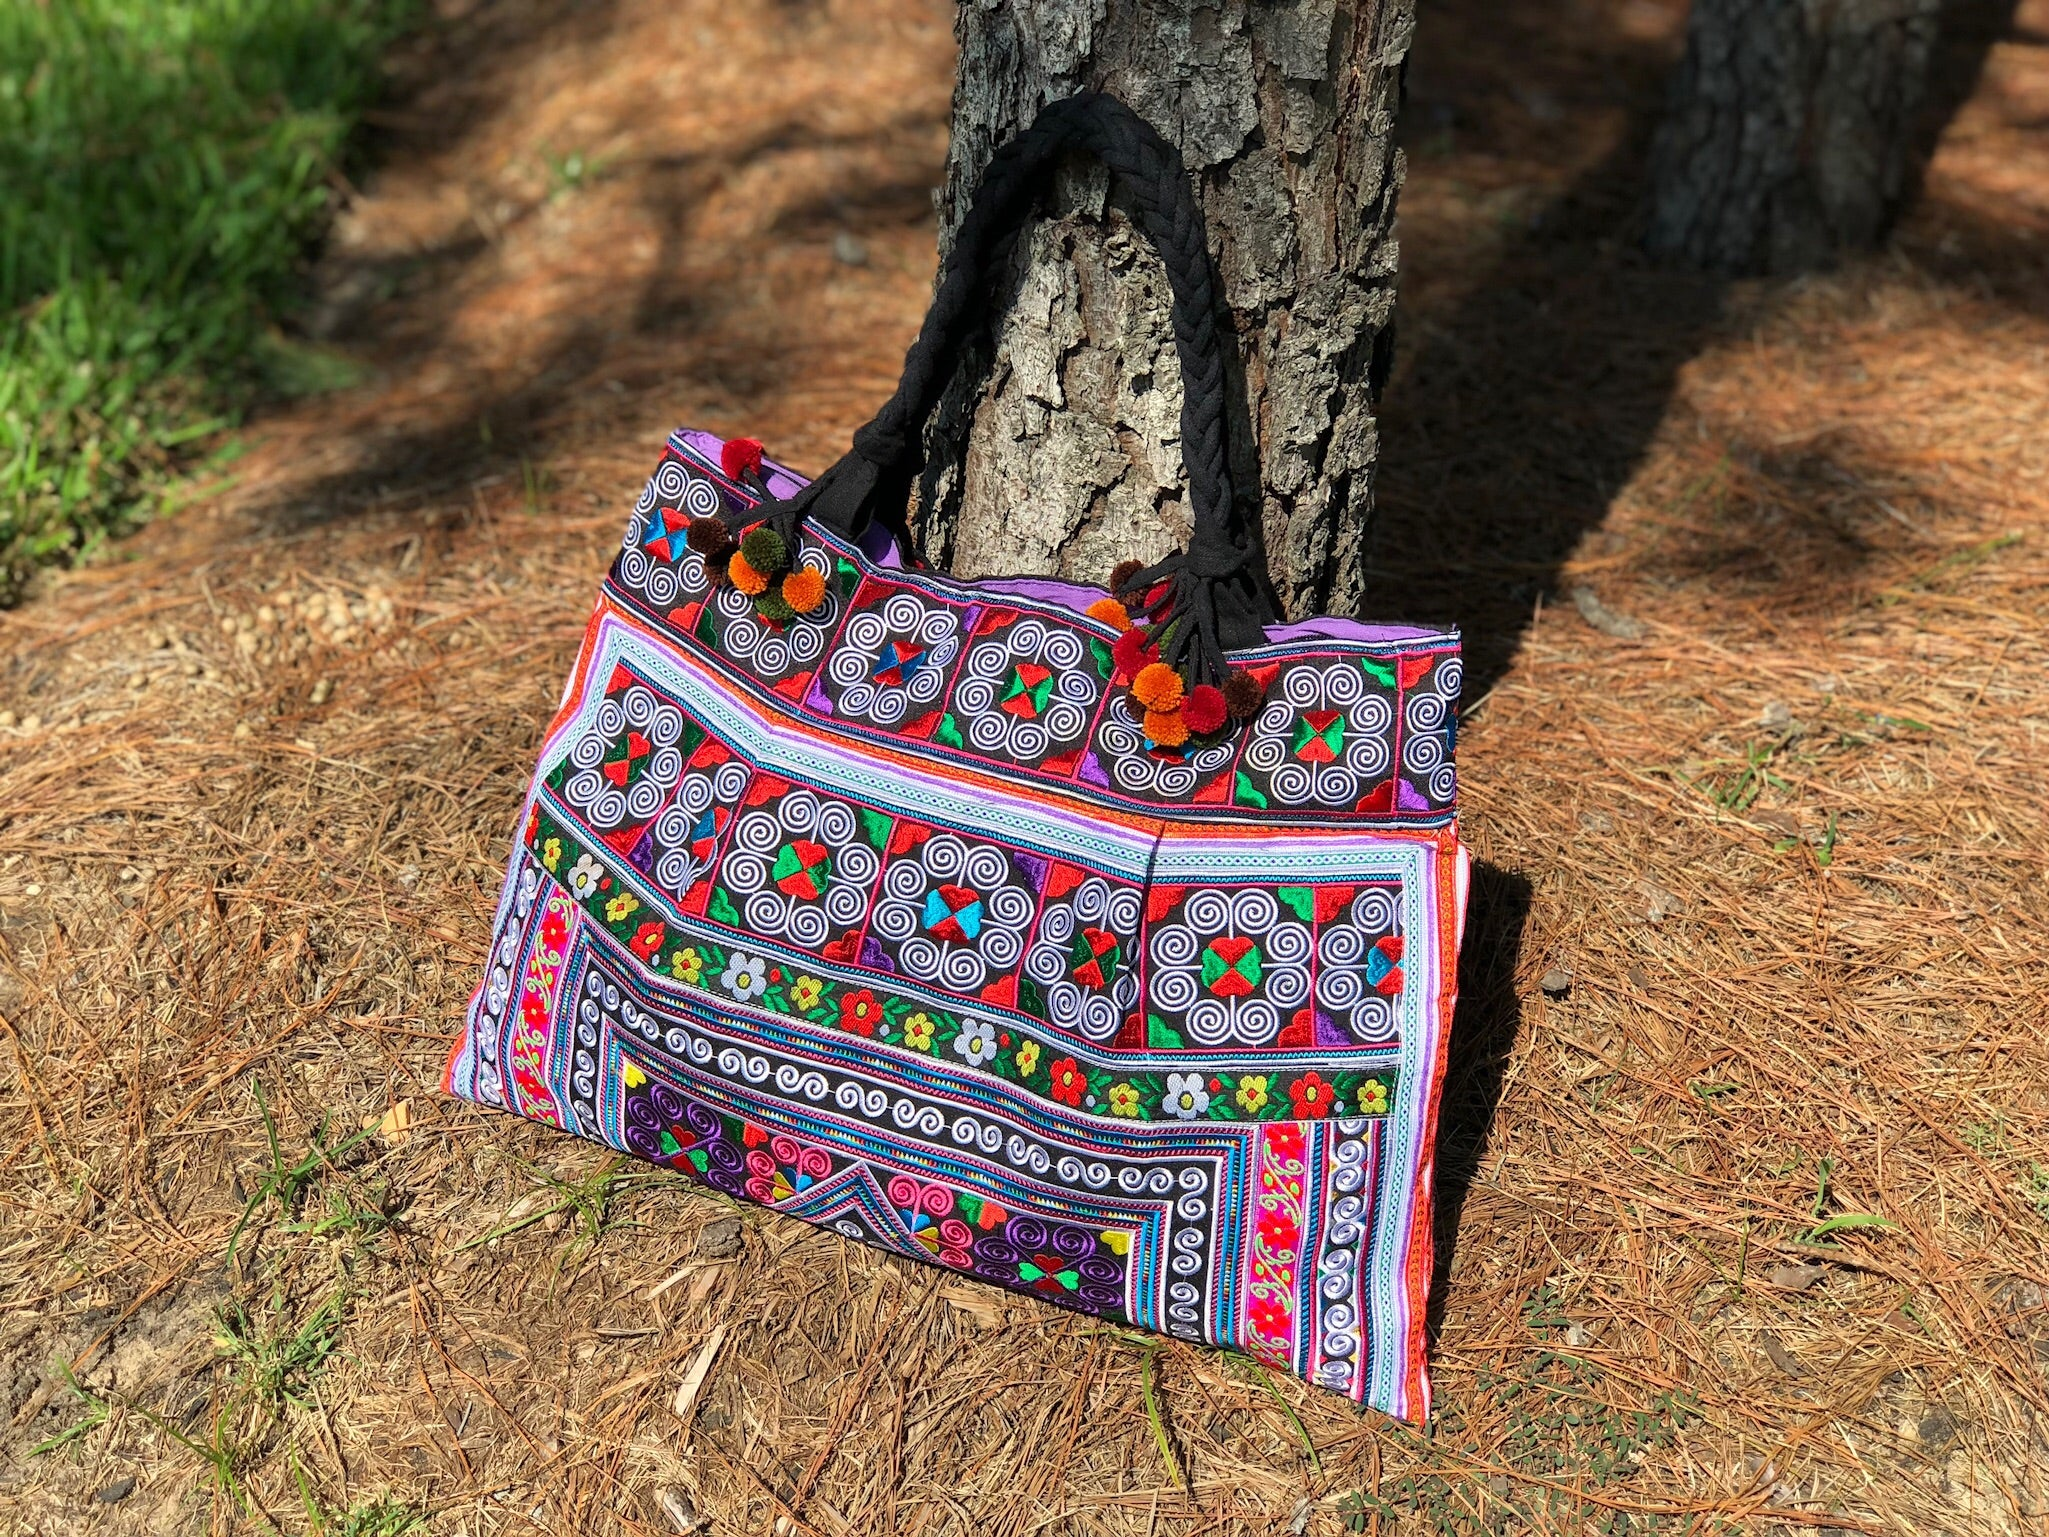 Colorful Embroidered Tote Bag - Boho Chic Large Handbag - Style CEPTB02